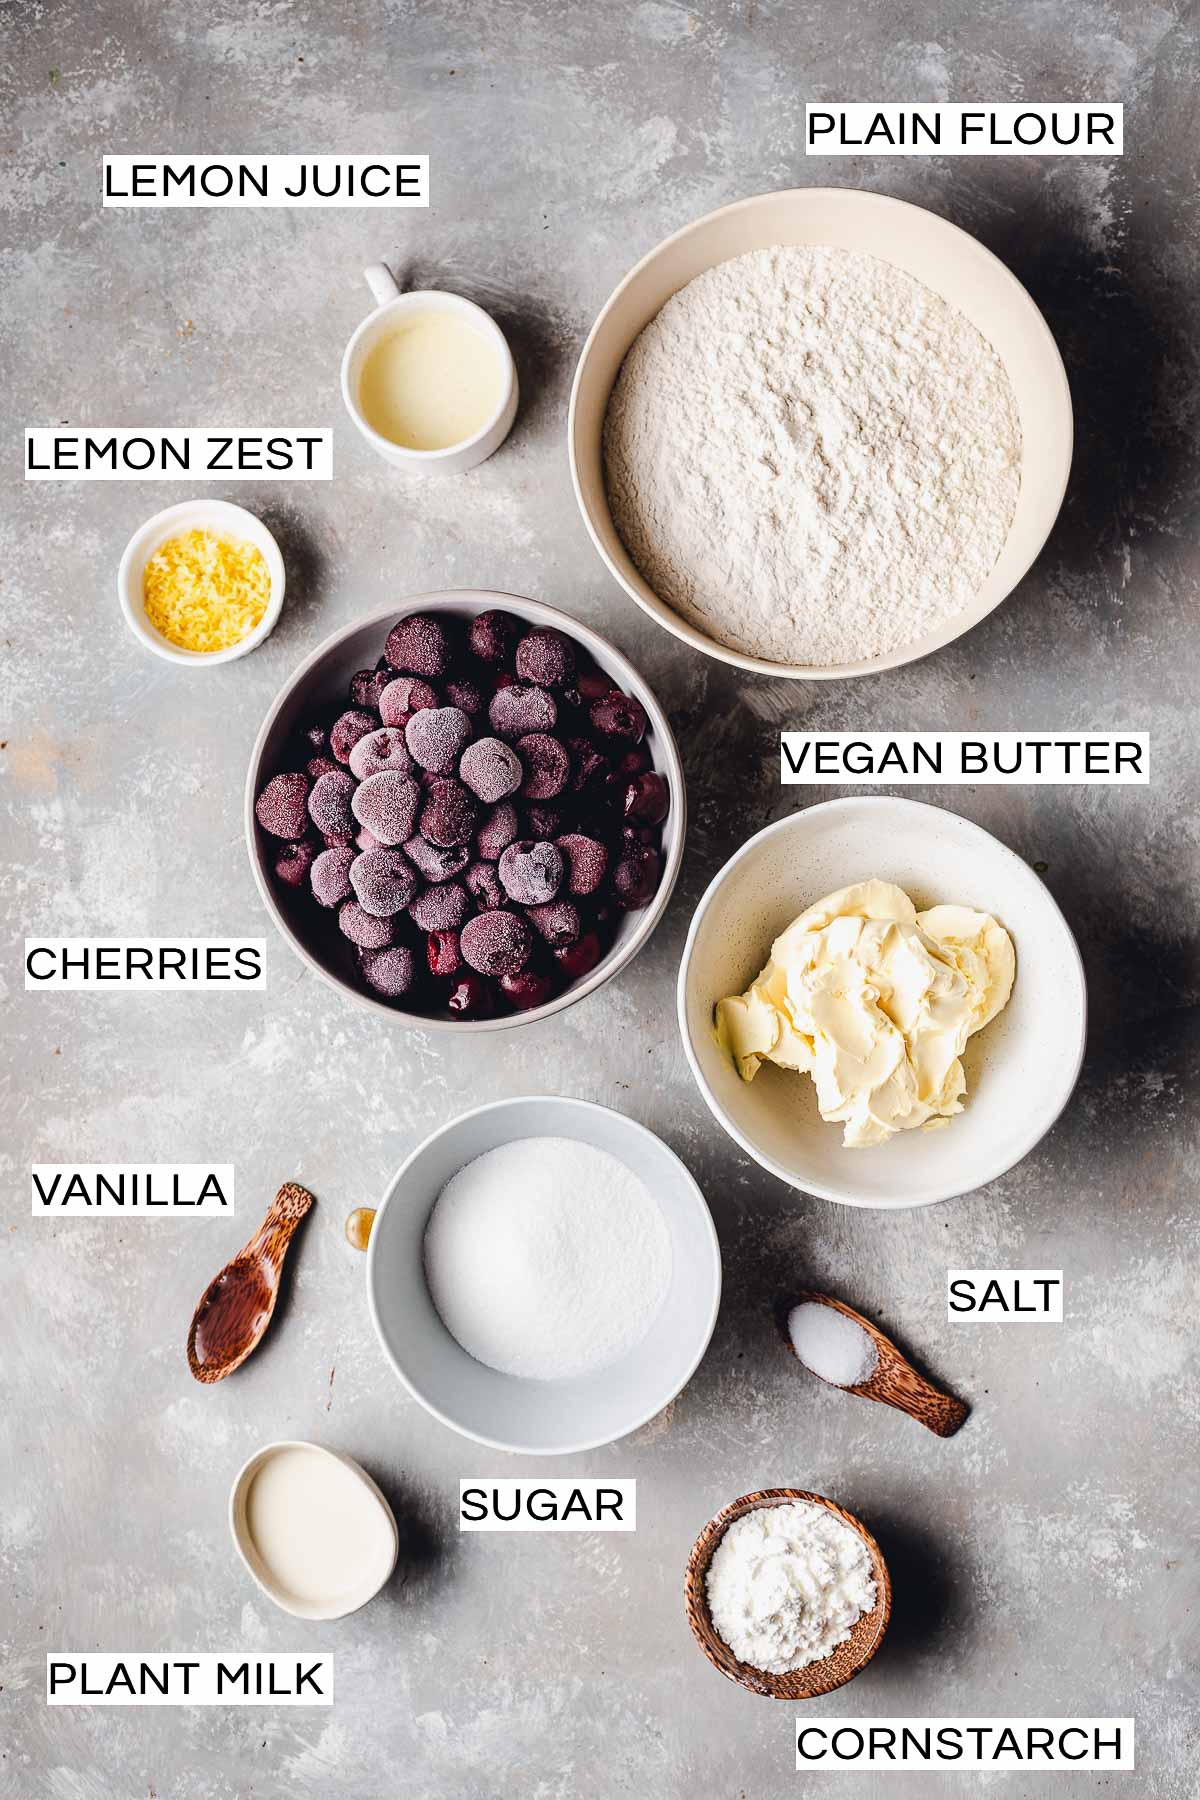 All ingredients needed to bake a cherry pie.